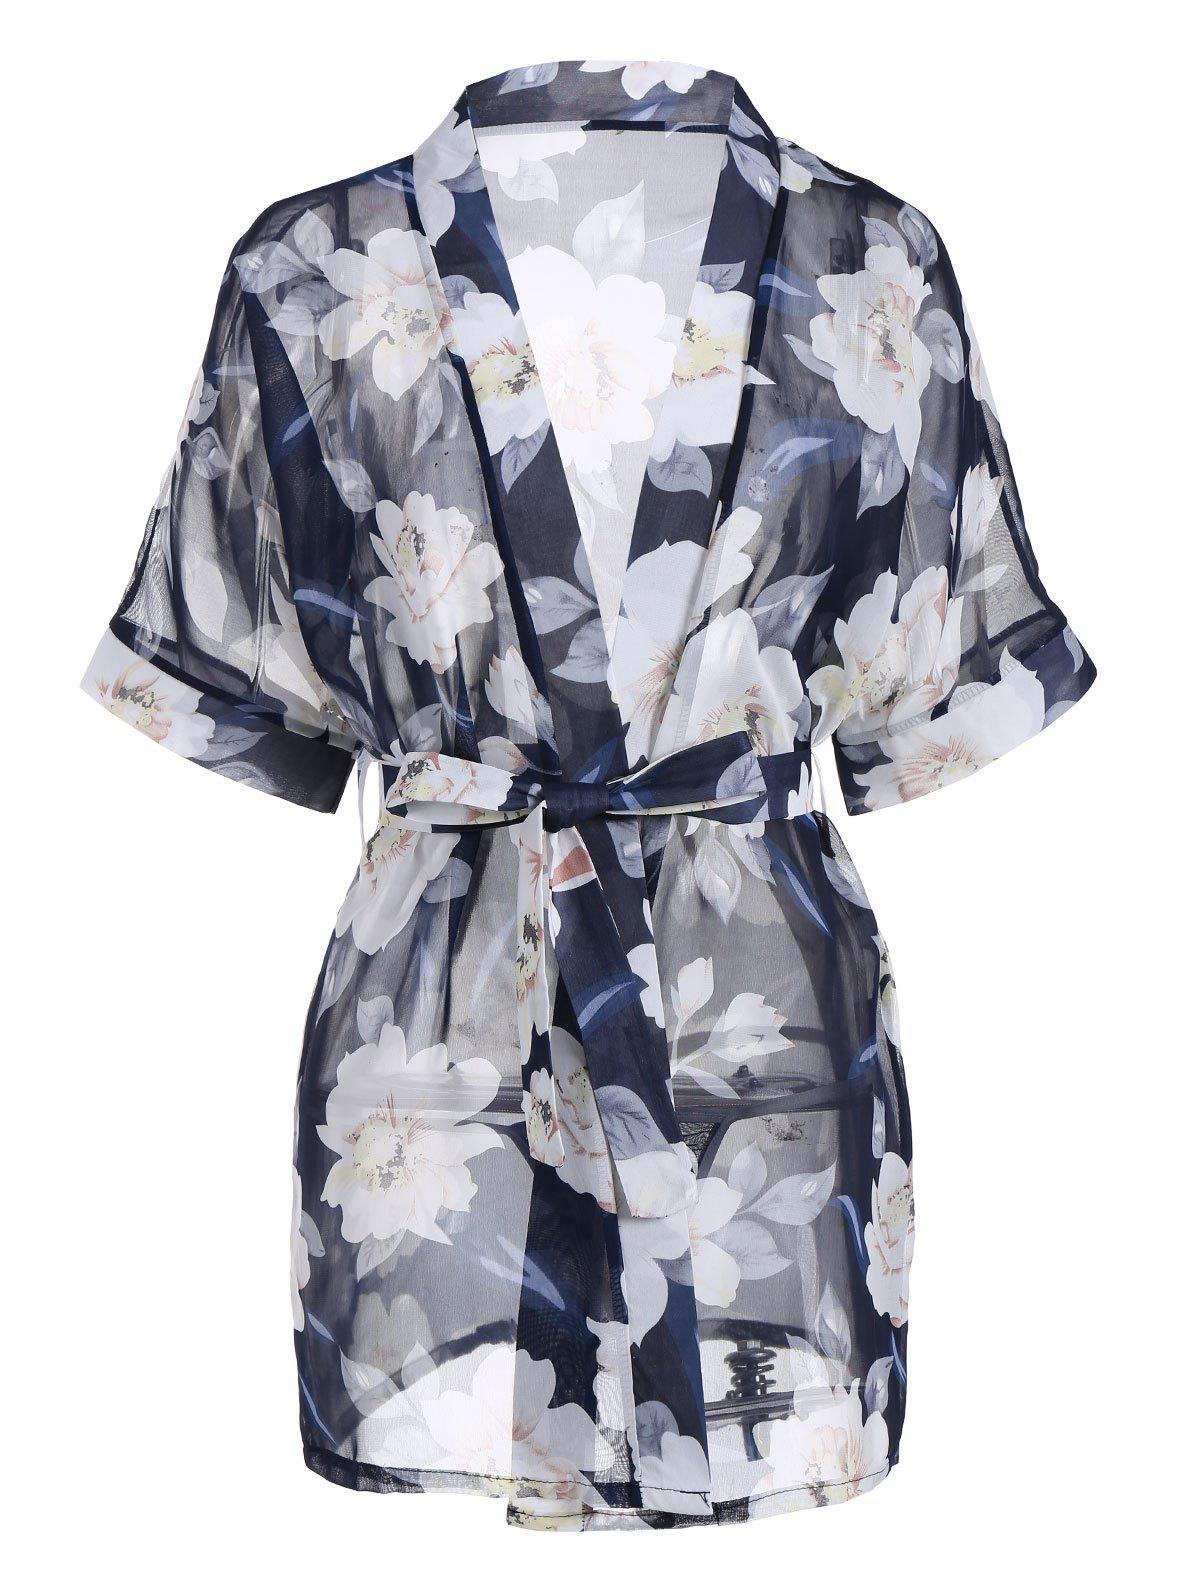 Floral Chiffon Sheer Robe with BeltWOMEN<br><br>Size: ONE SIZE; Color: CERULEAN; Material: Polyester; Pattern Type: Floral; Weight: 0.1800kg; Package Contents: 1 x Robe  1 x Belt  1 x T Back;